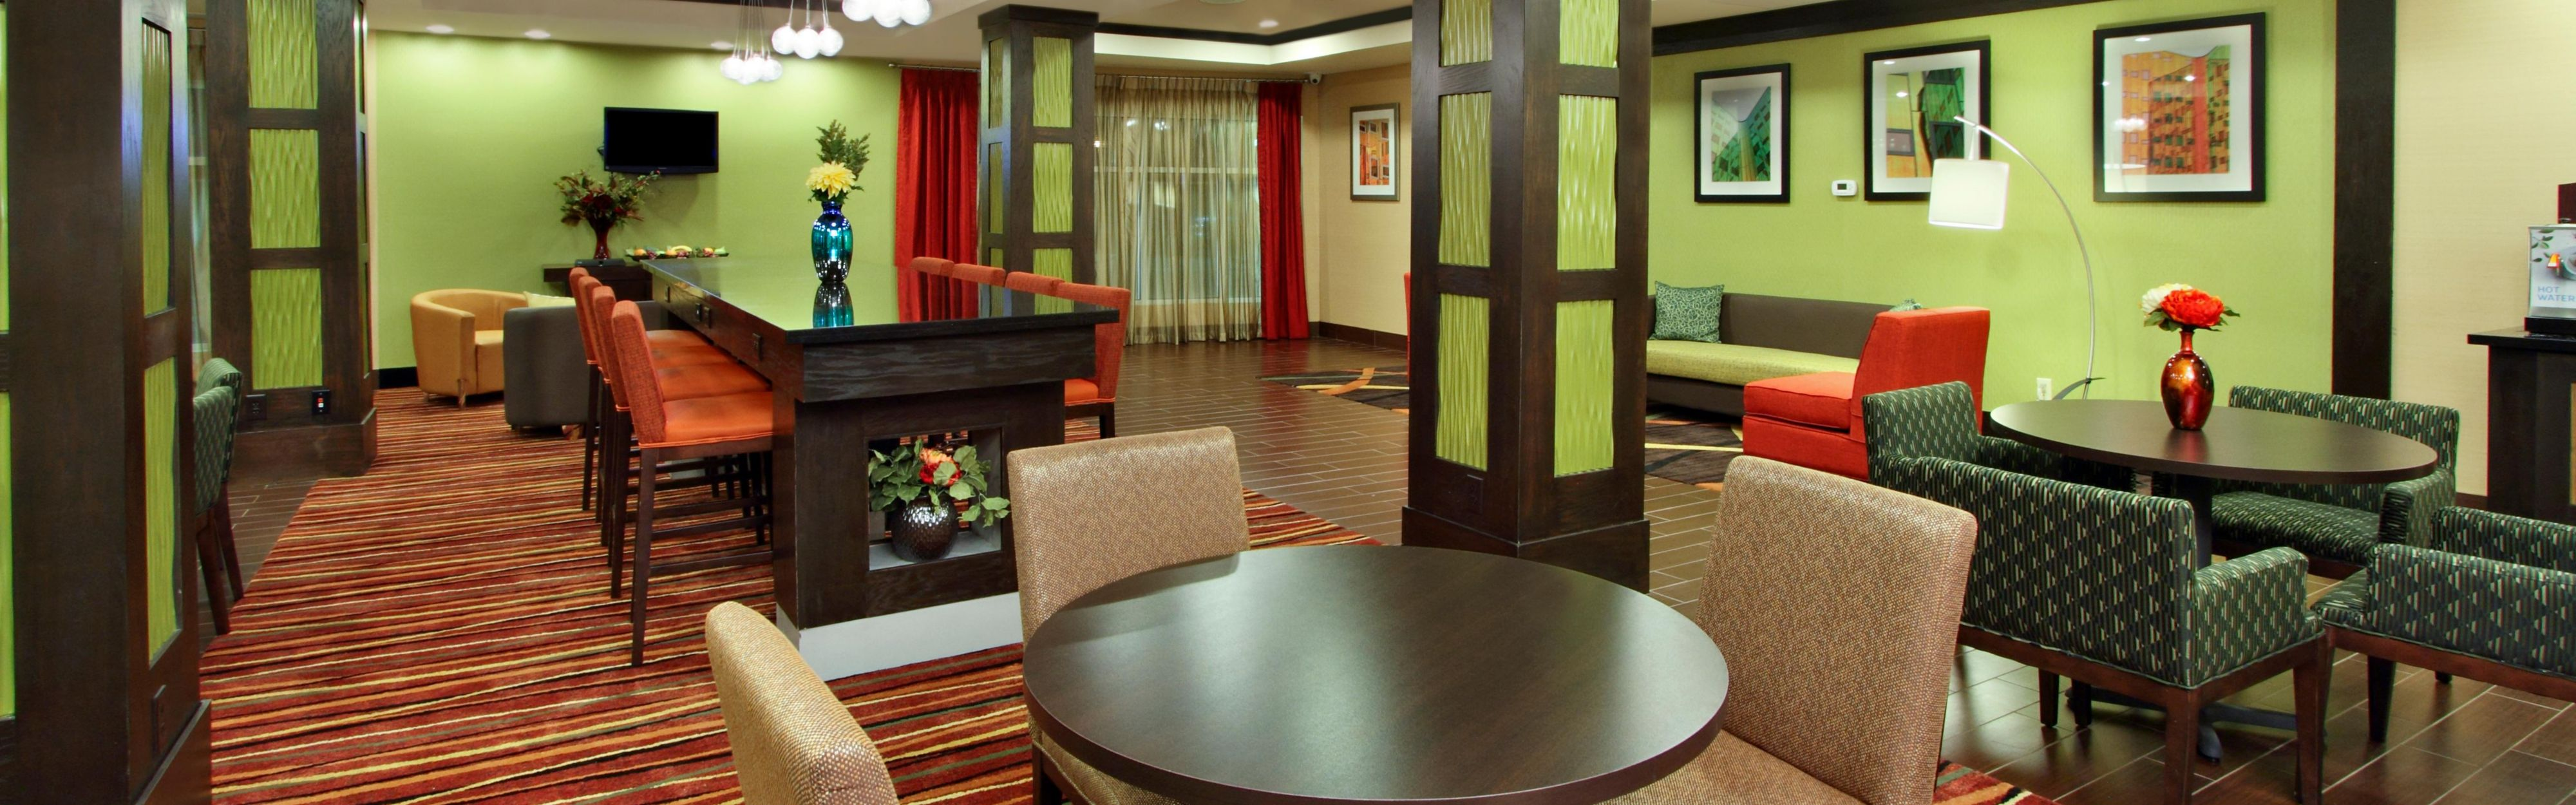 Holiday Inn Express & Suites Houston East - Baytown image 3